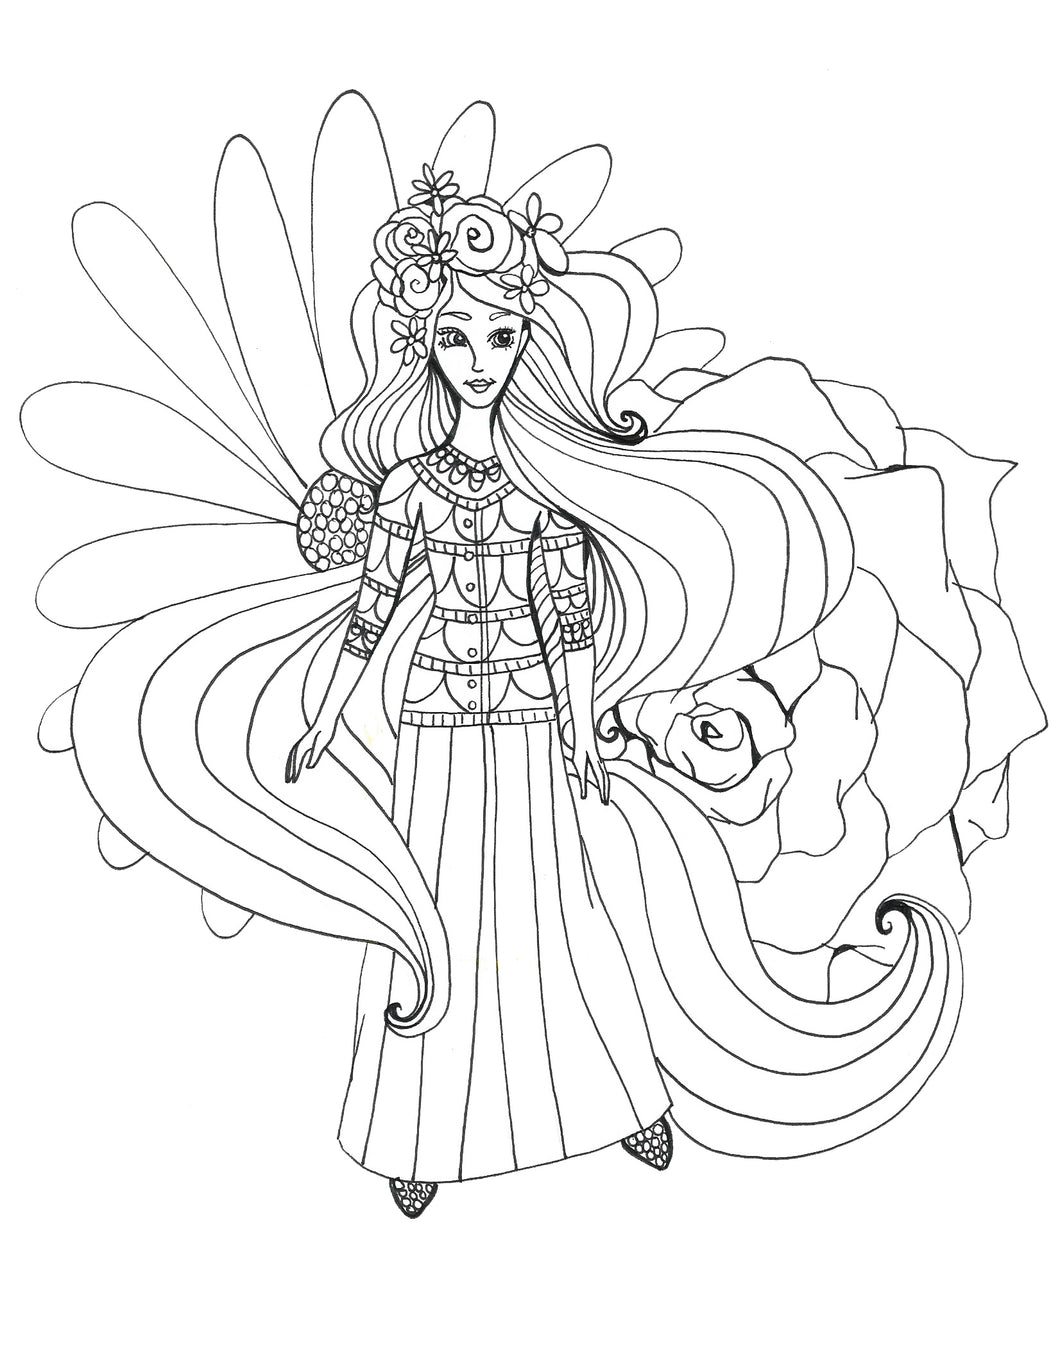 Blossom Girl Coloring Page